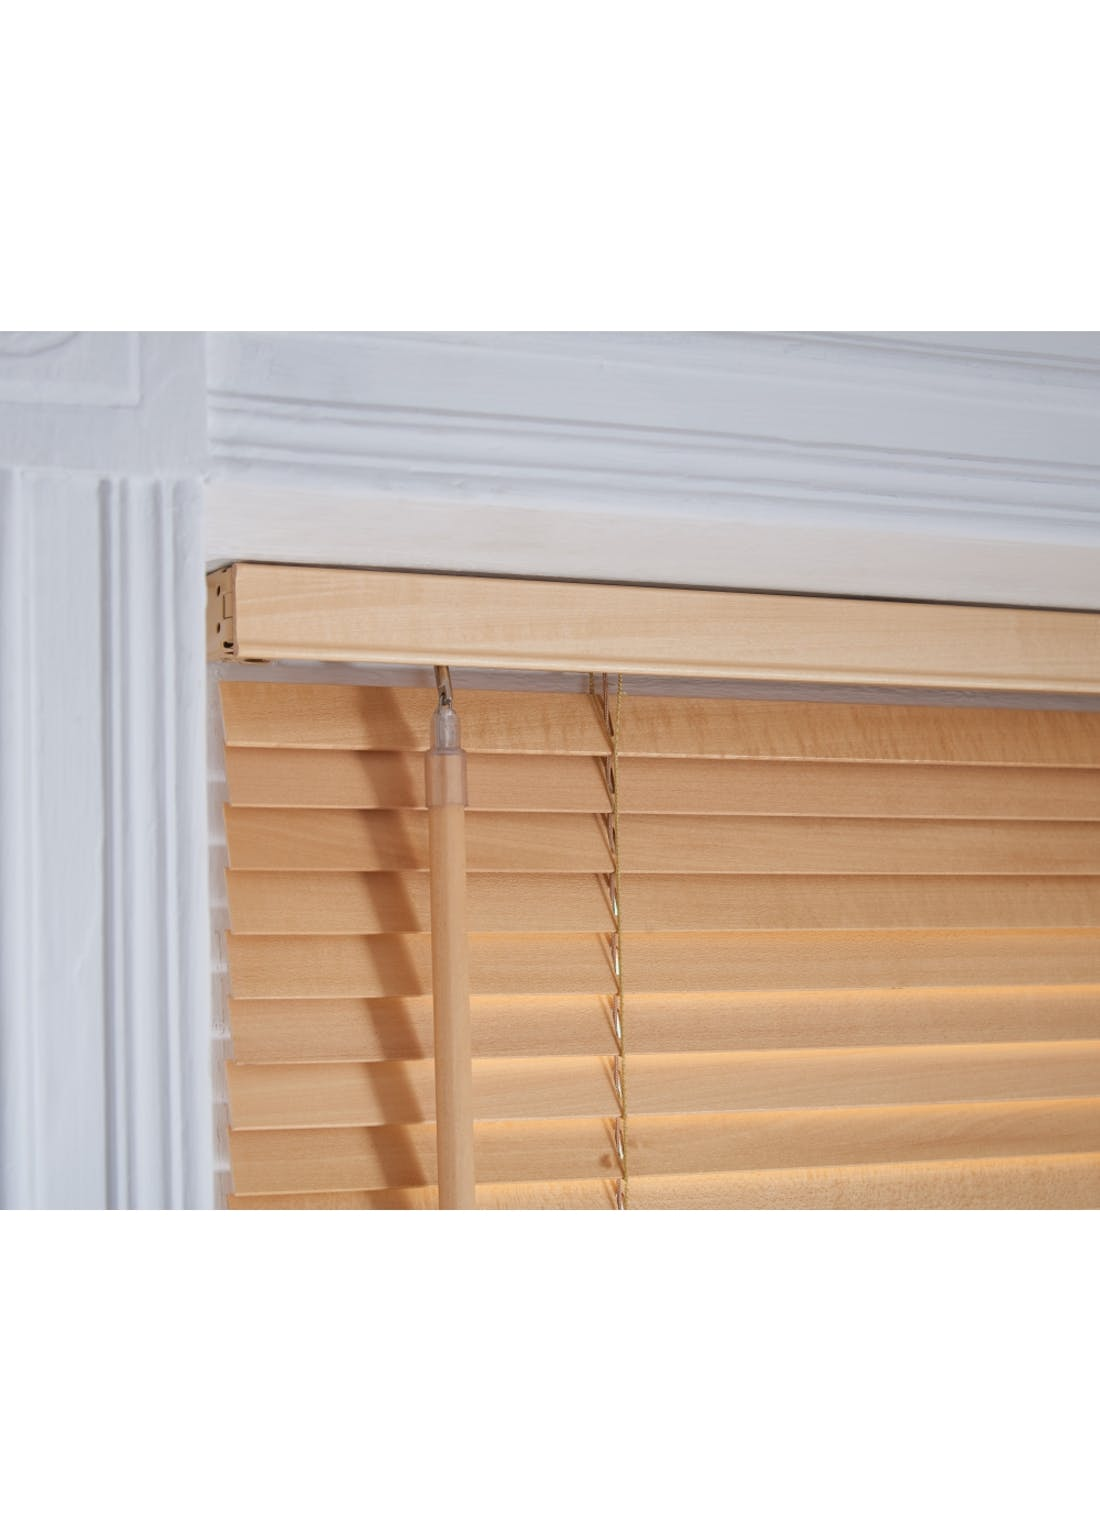 Homemaker Wooden Venetian Blind 25mm Slats